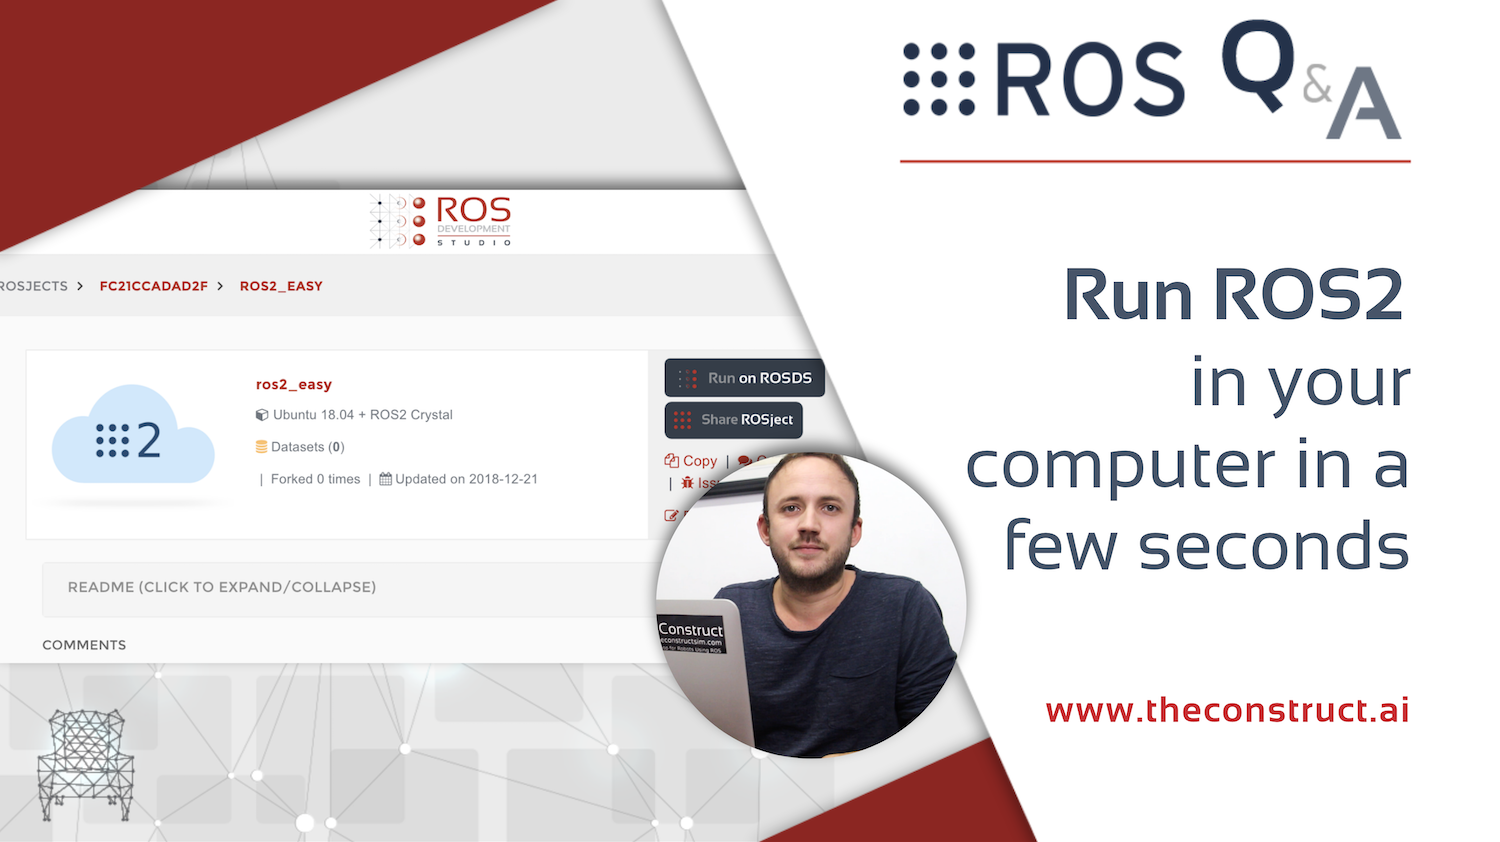 [ROS Q&A] 172 - Run ROS2 in your computer in a few seconds